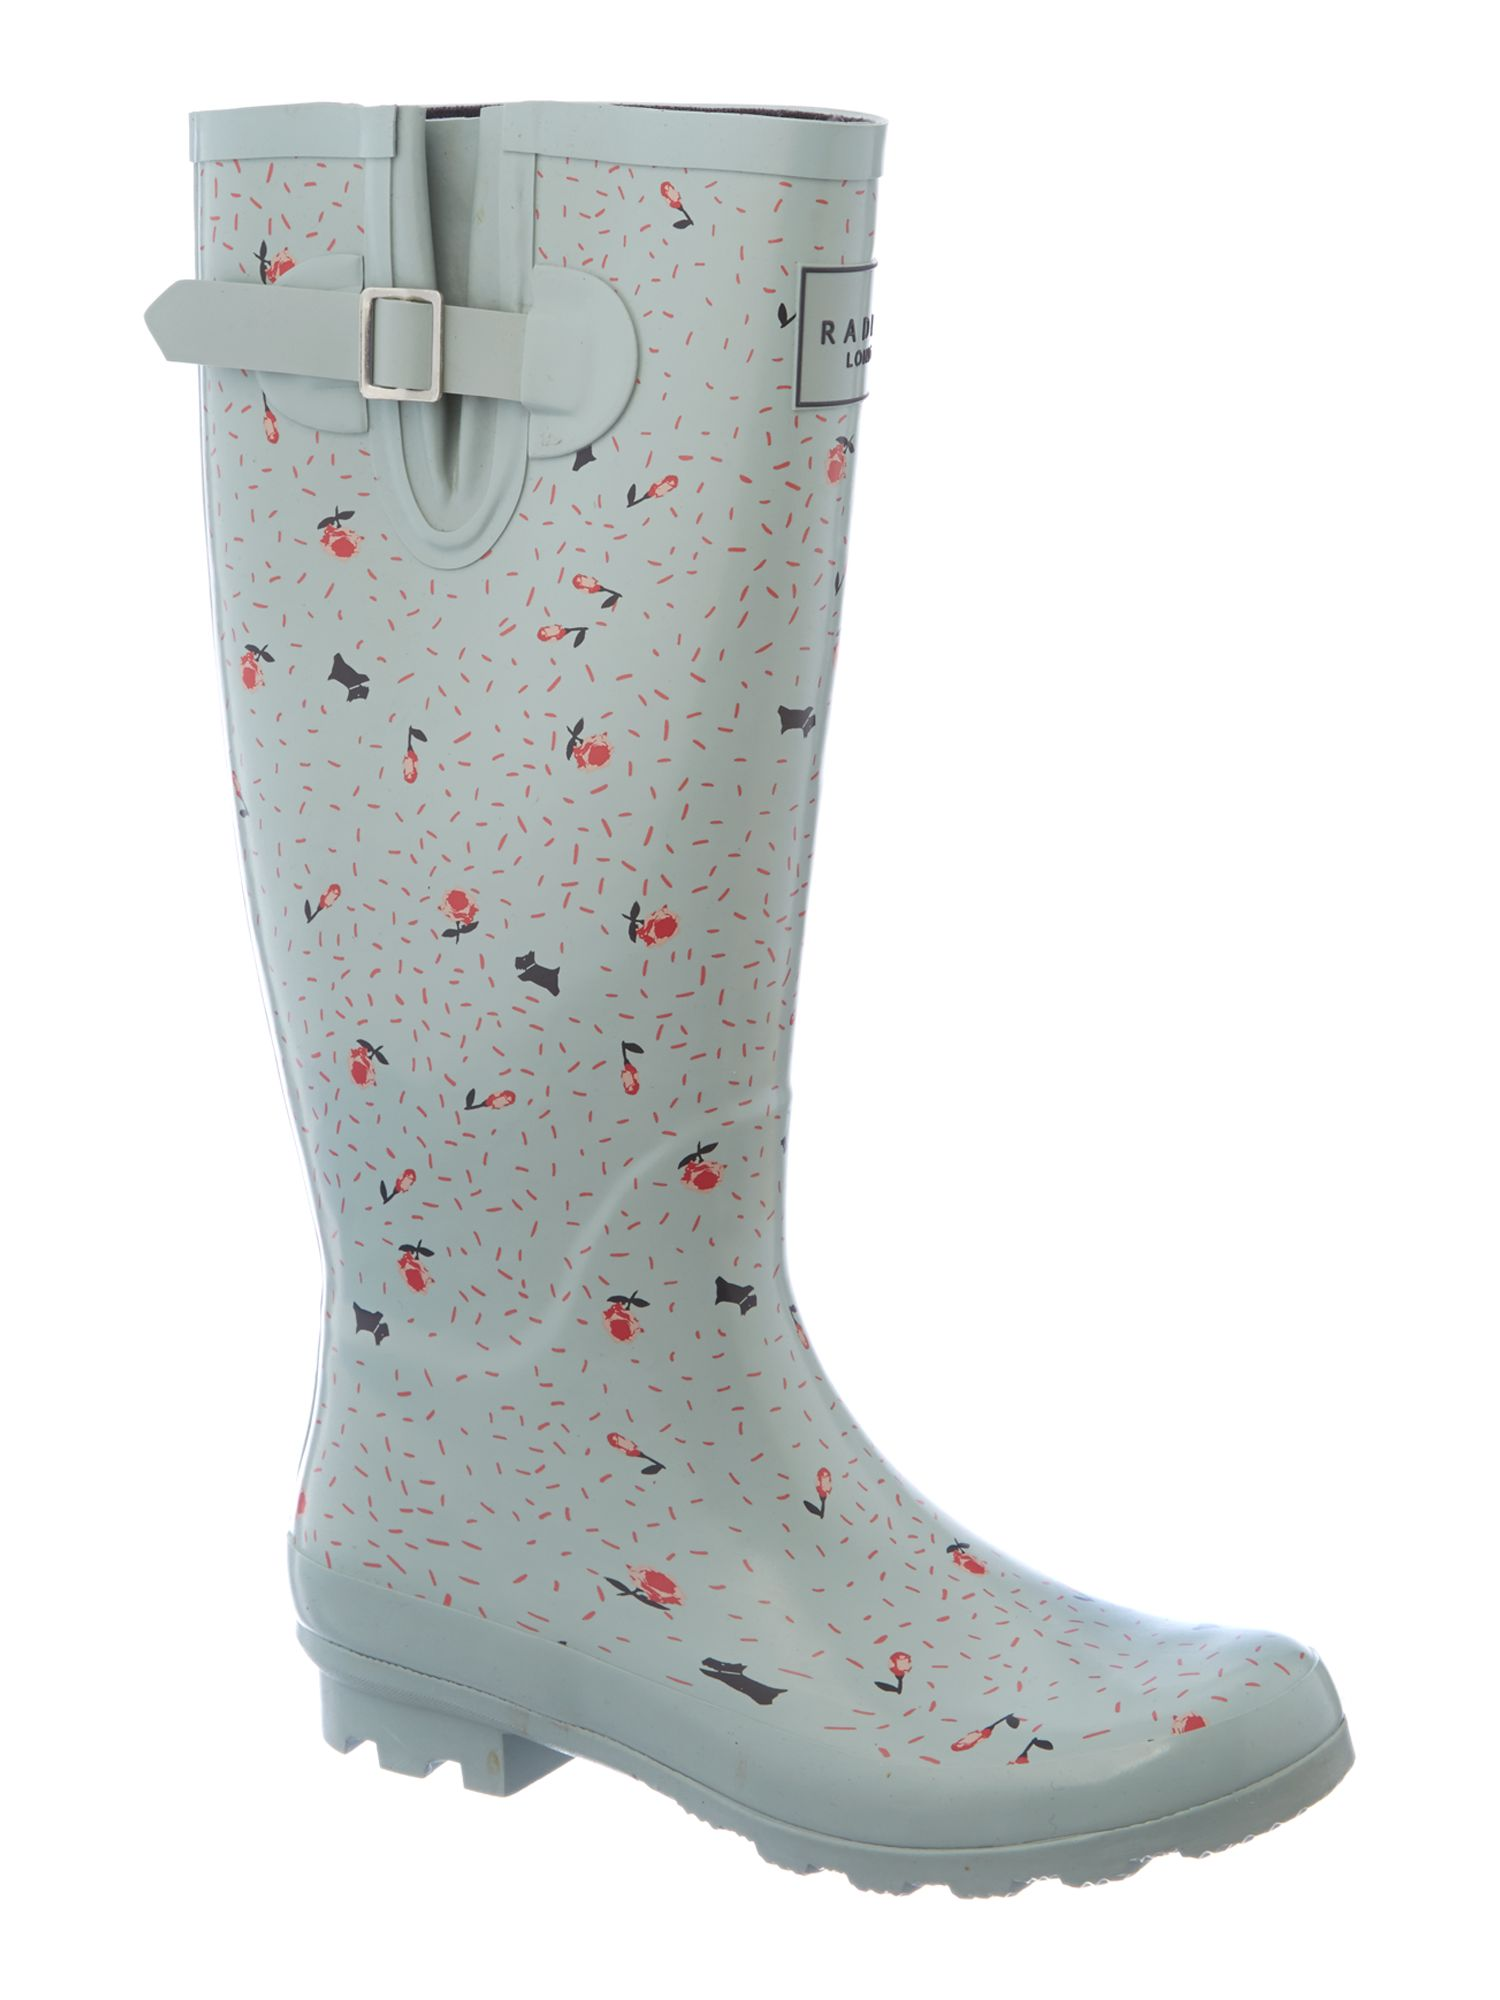 Emerson tall wellington boot